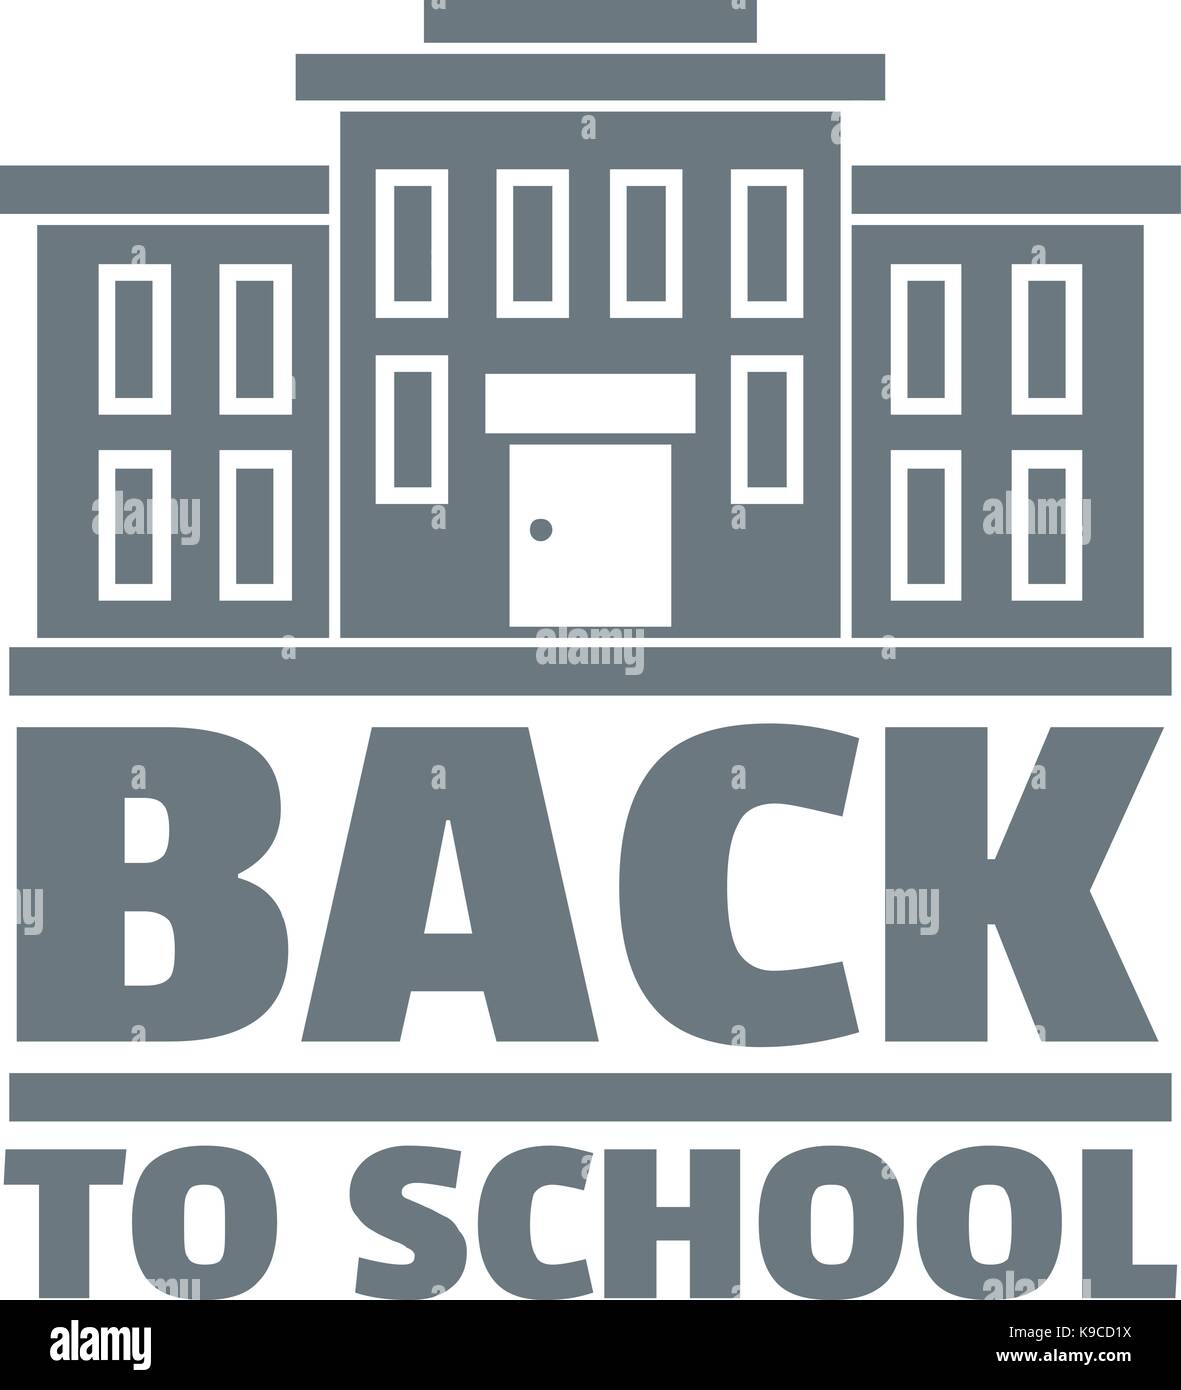 Back to school logo, simple gray style - Stock Image